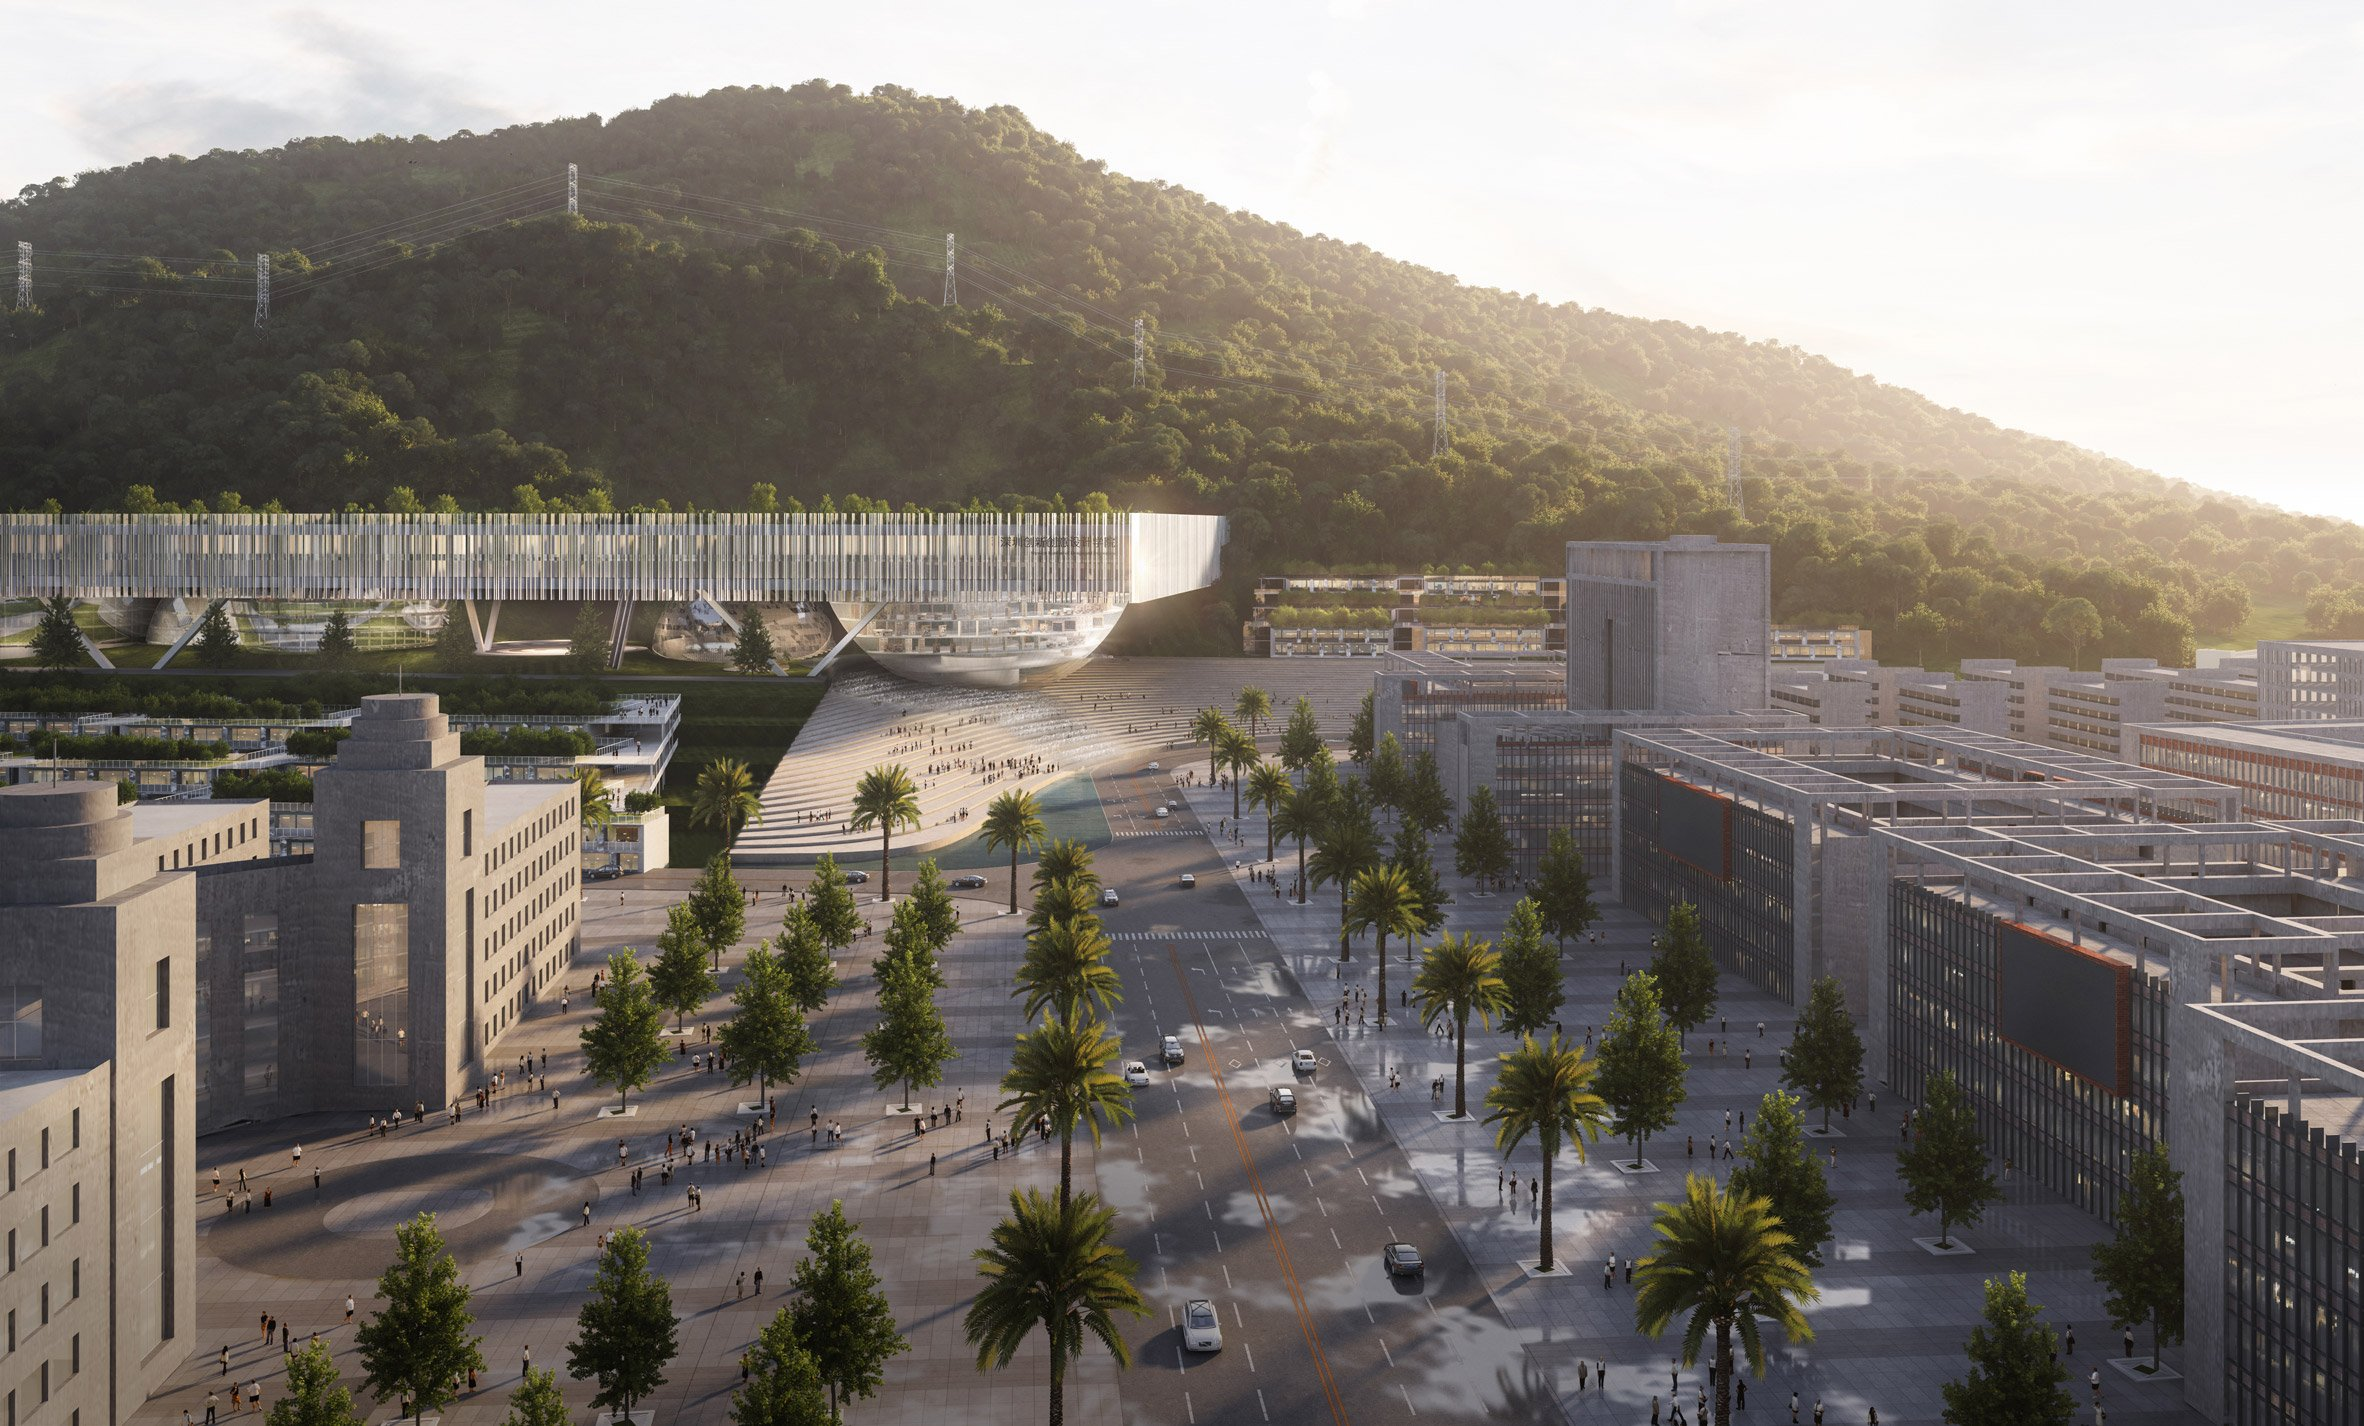 The campus by Dominique Perrault Architects and Zhubo Design has a large public amphitheatre